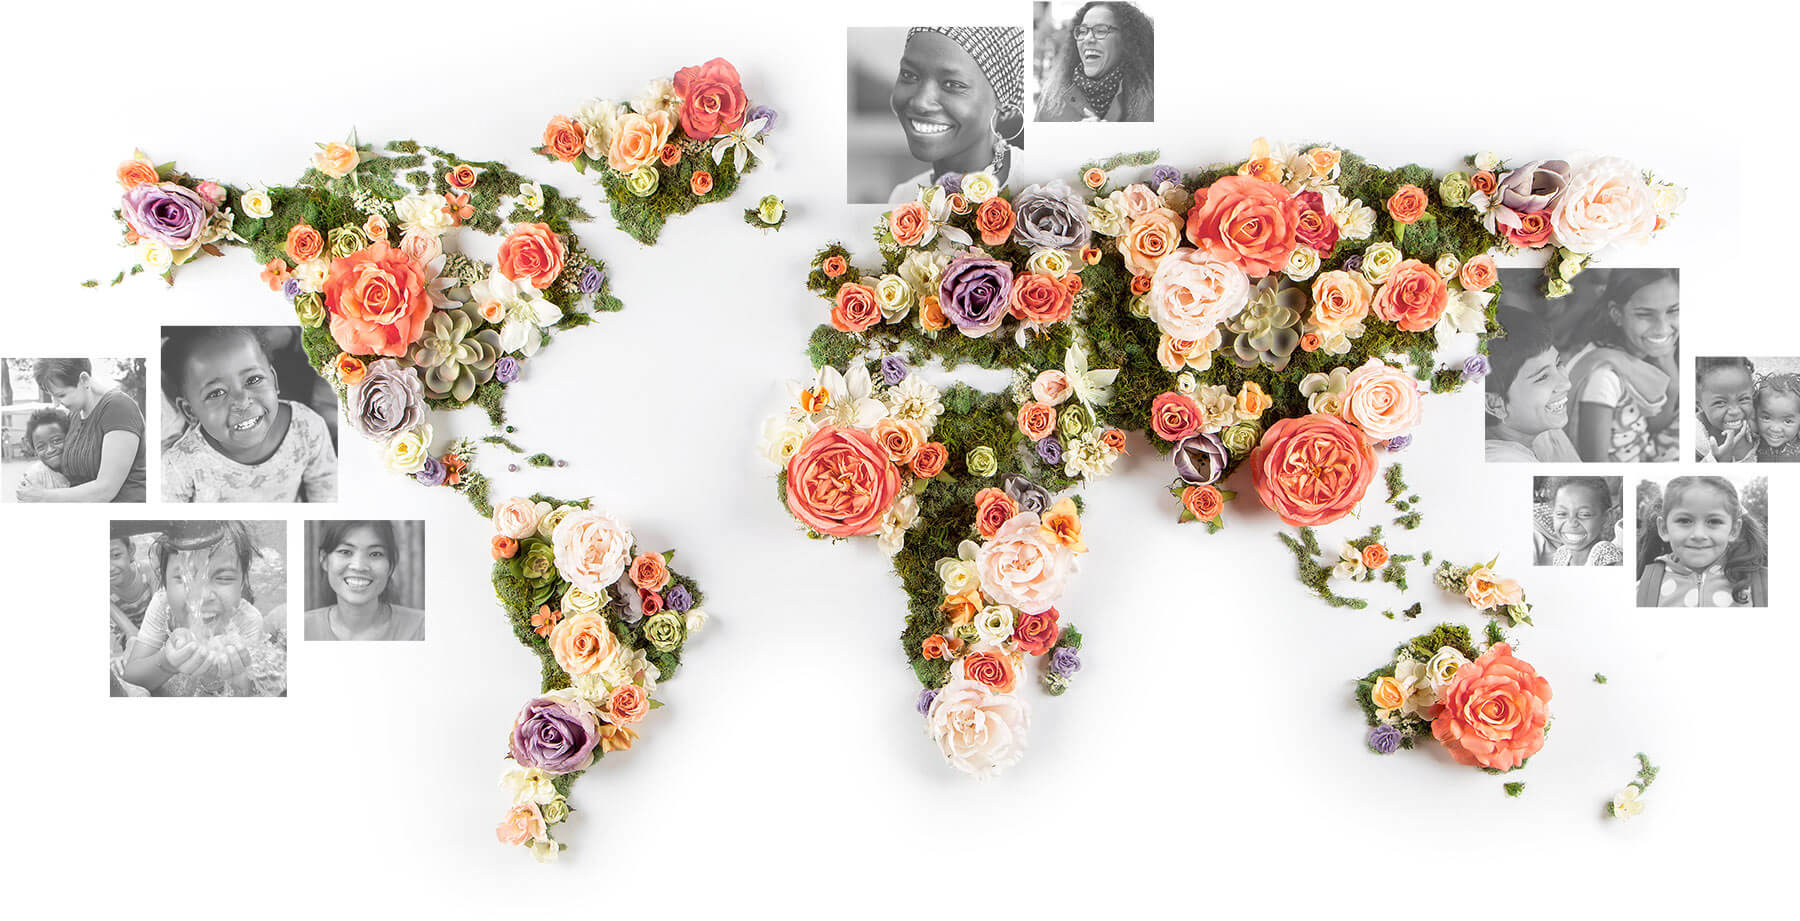 World map made of flowers featuring women from around the world